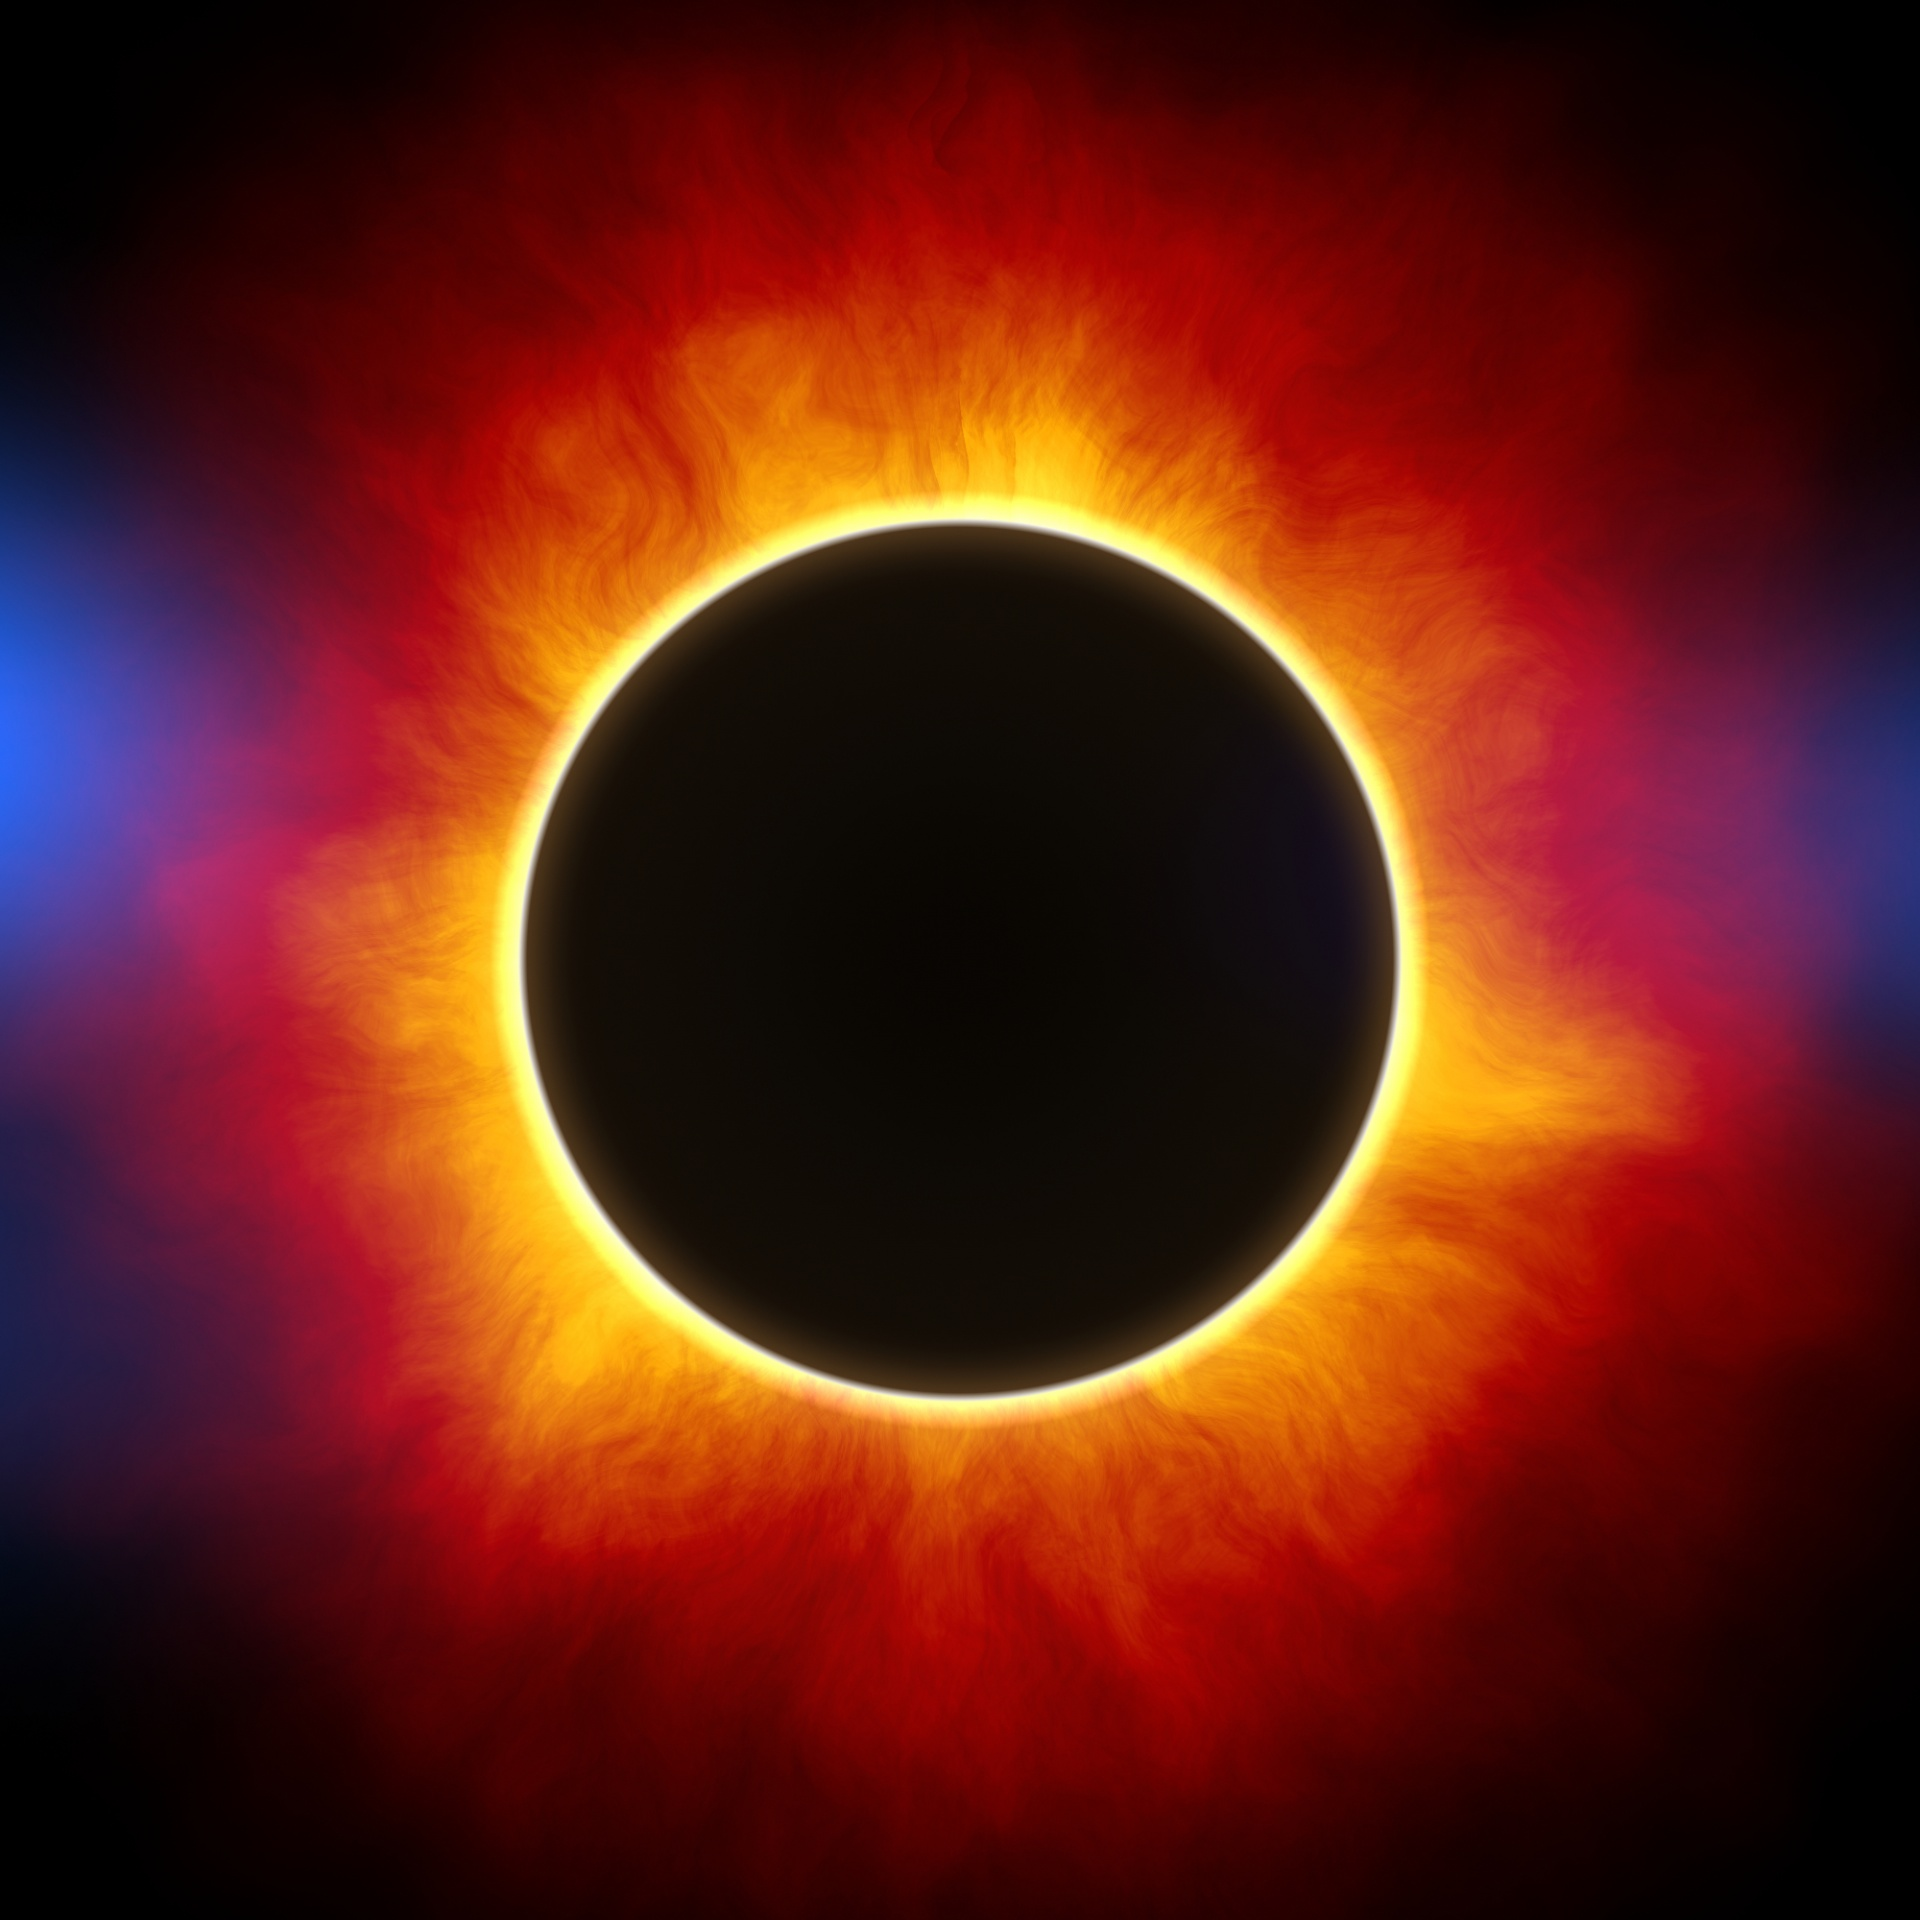 Solar Eclipse, Corona, Eclipse, Total solar eclipse